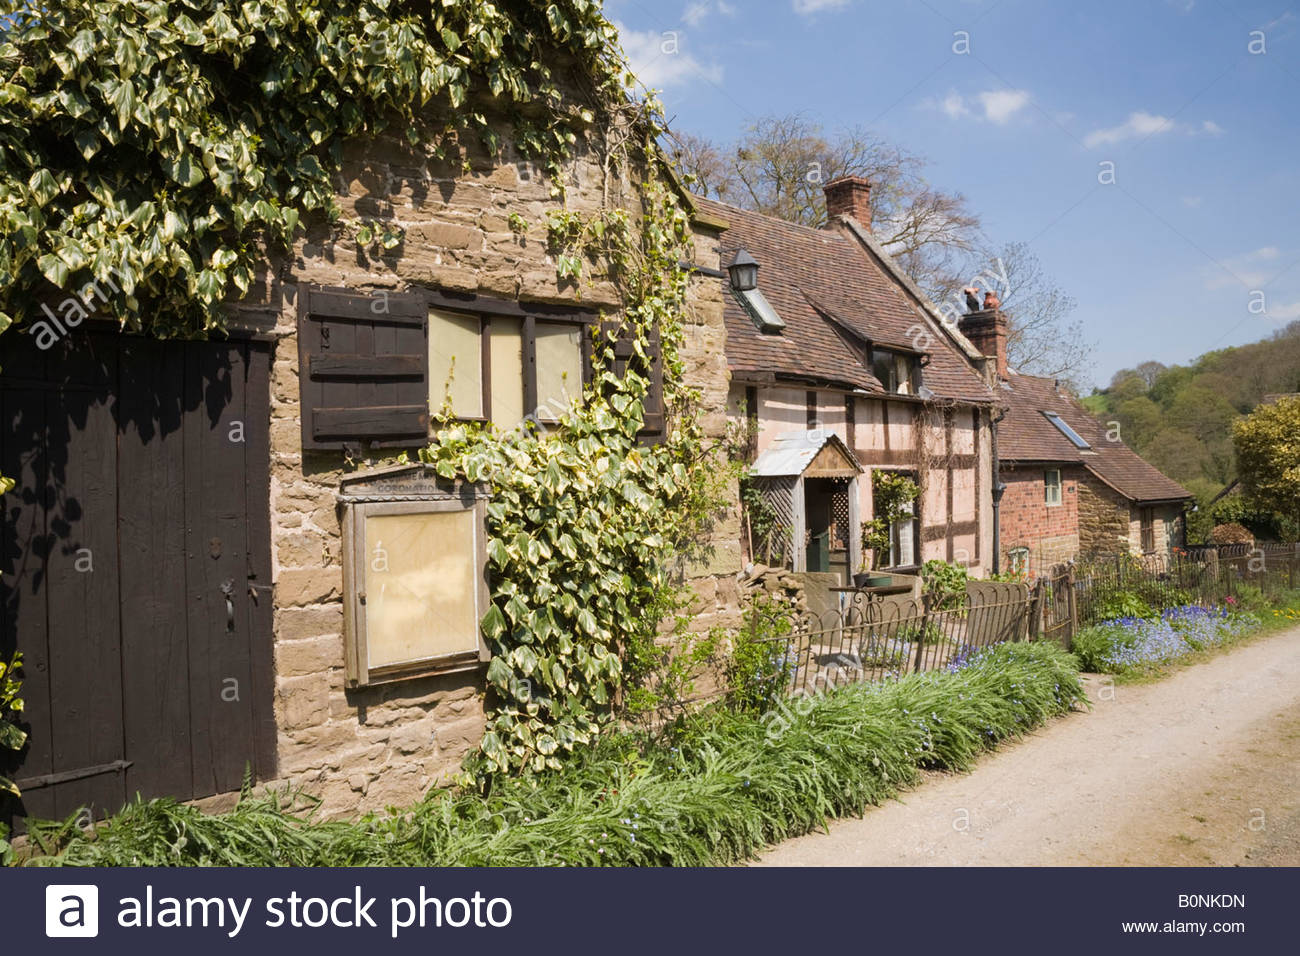 Quaint old English cottages and outbuilding on country lane in rural village of Hope Bowdler Shropshire West Midlands - Stock Image